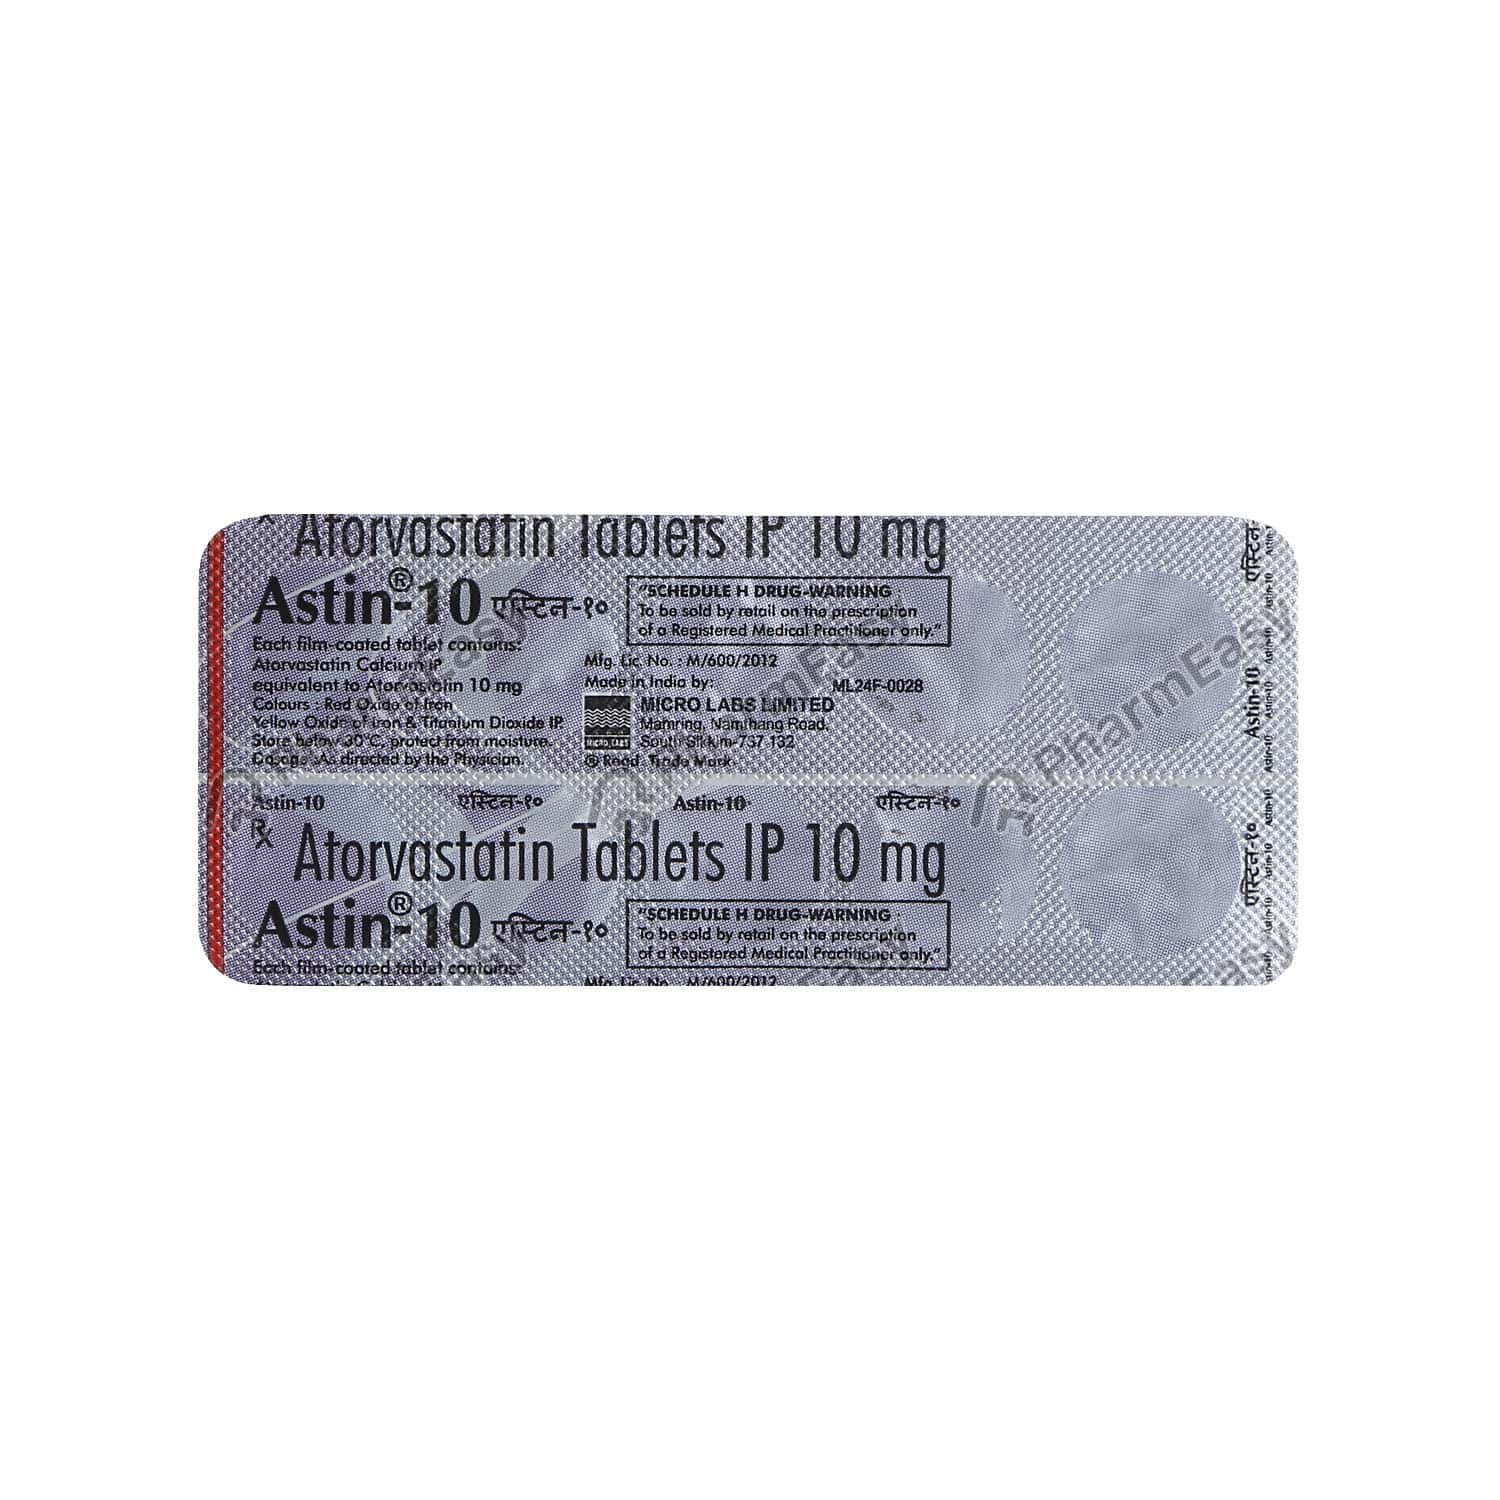 Astin 10mg Tablet